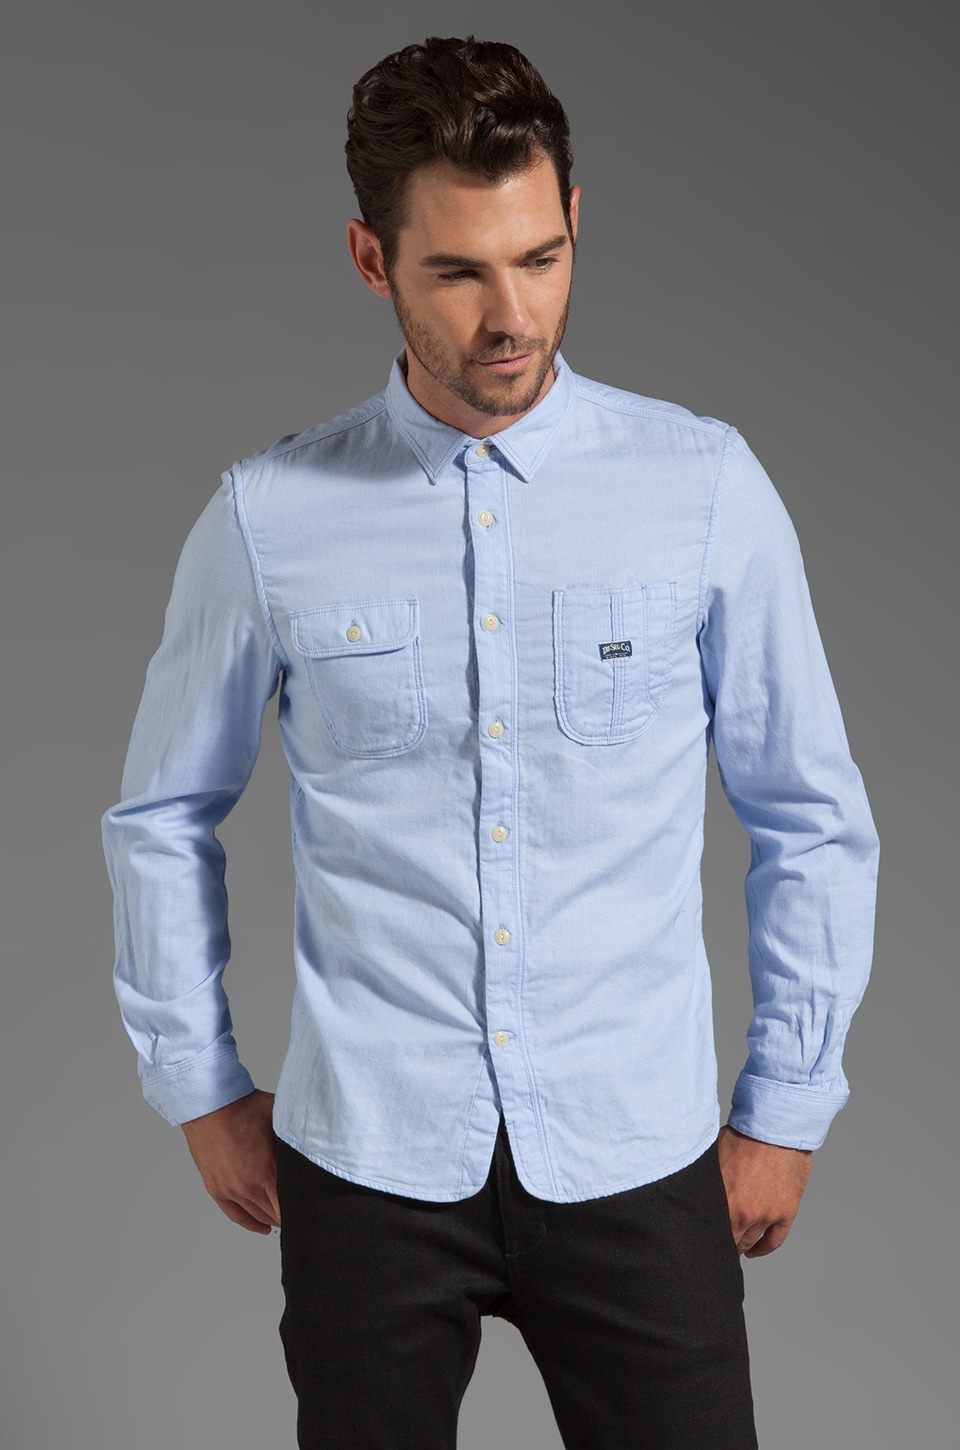 Diesel Schadex Button Down in Light Blue Stripe